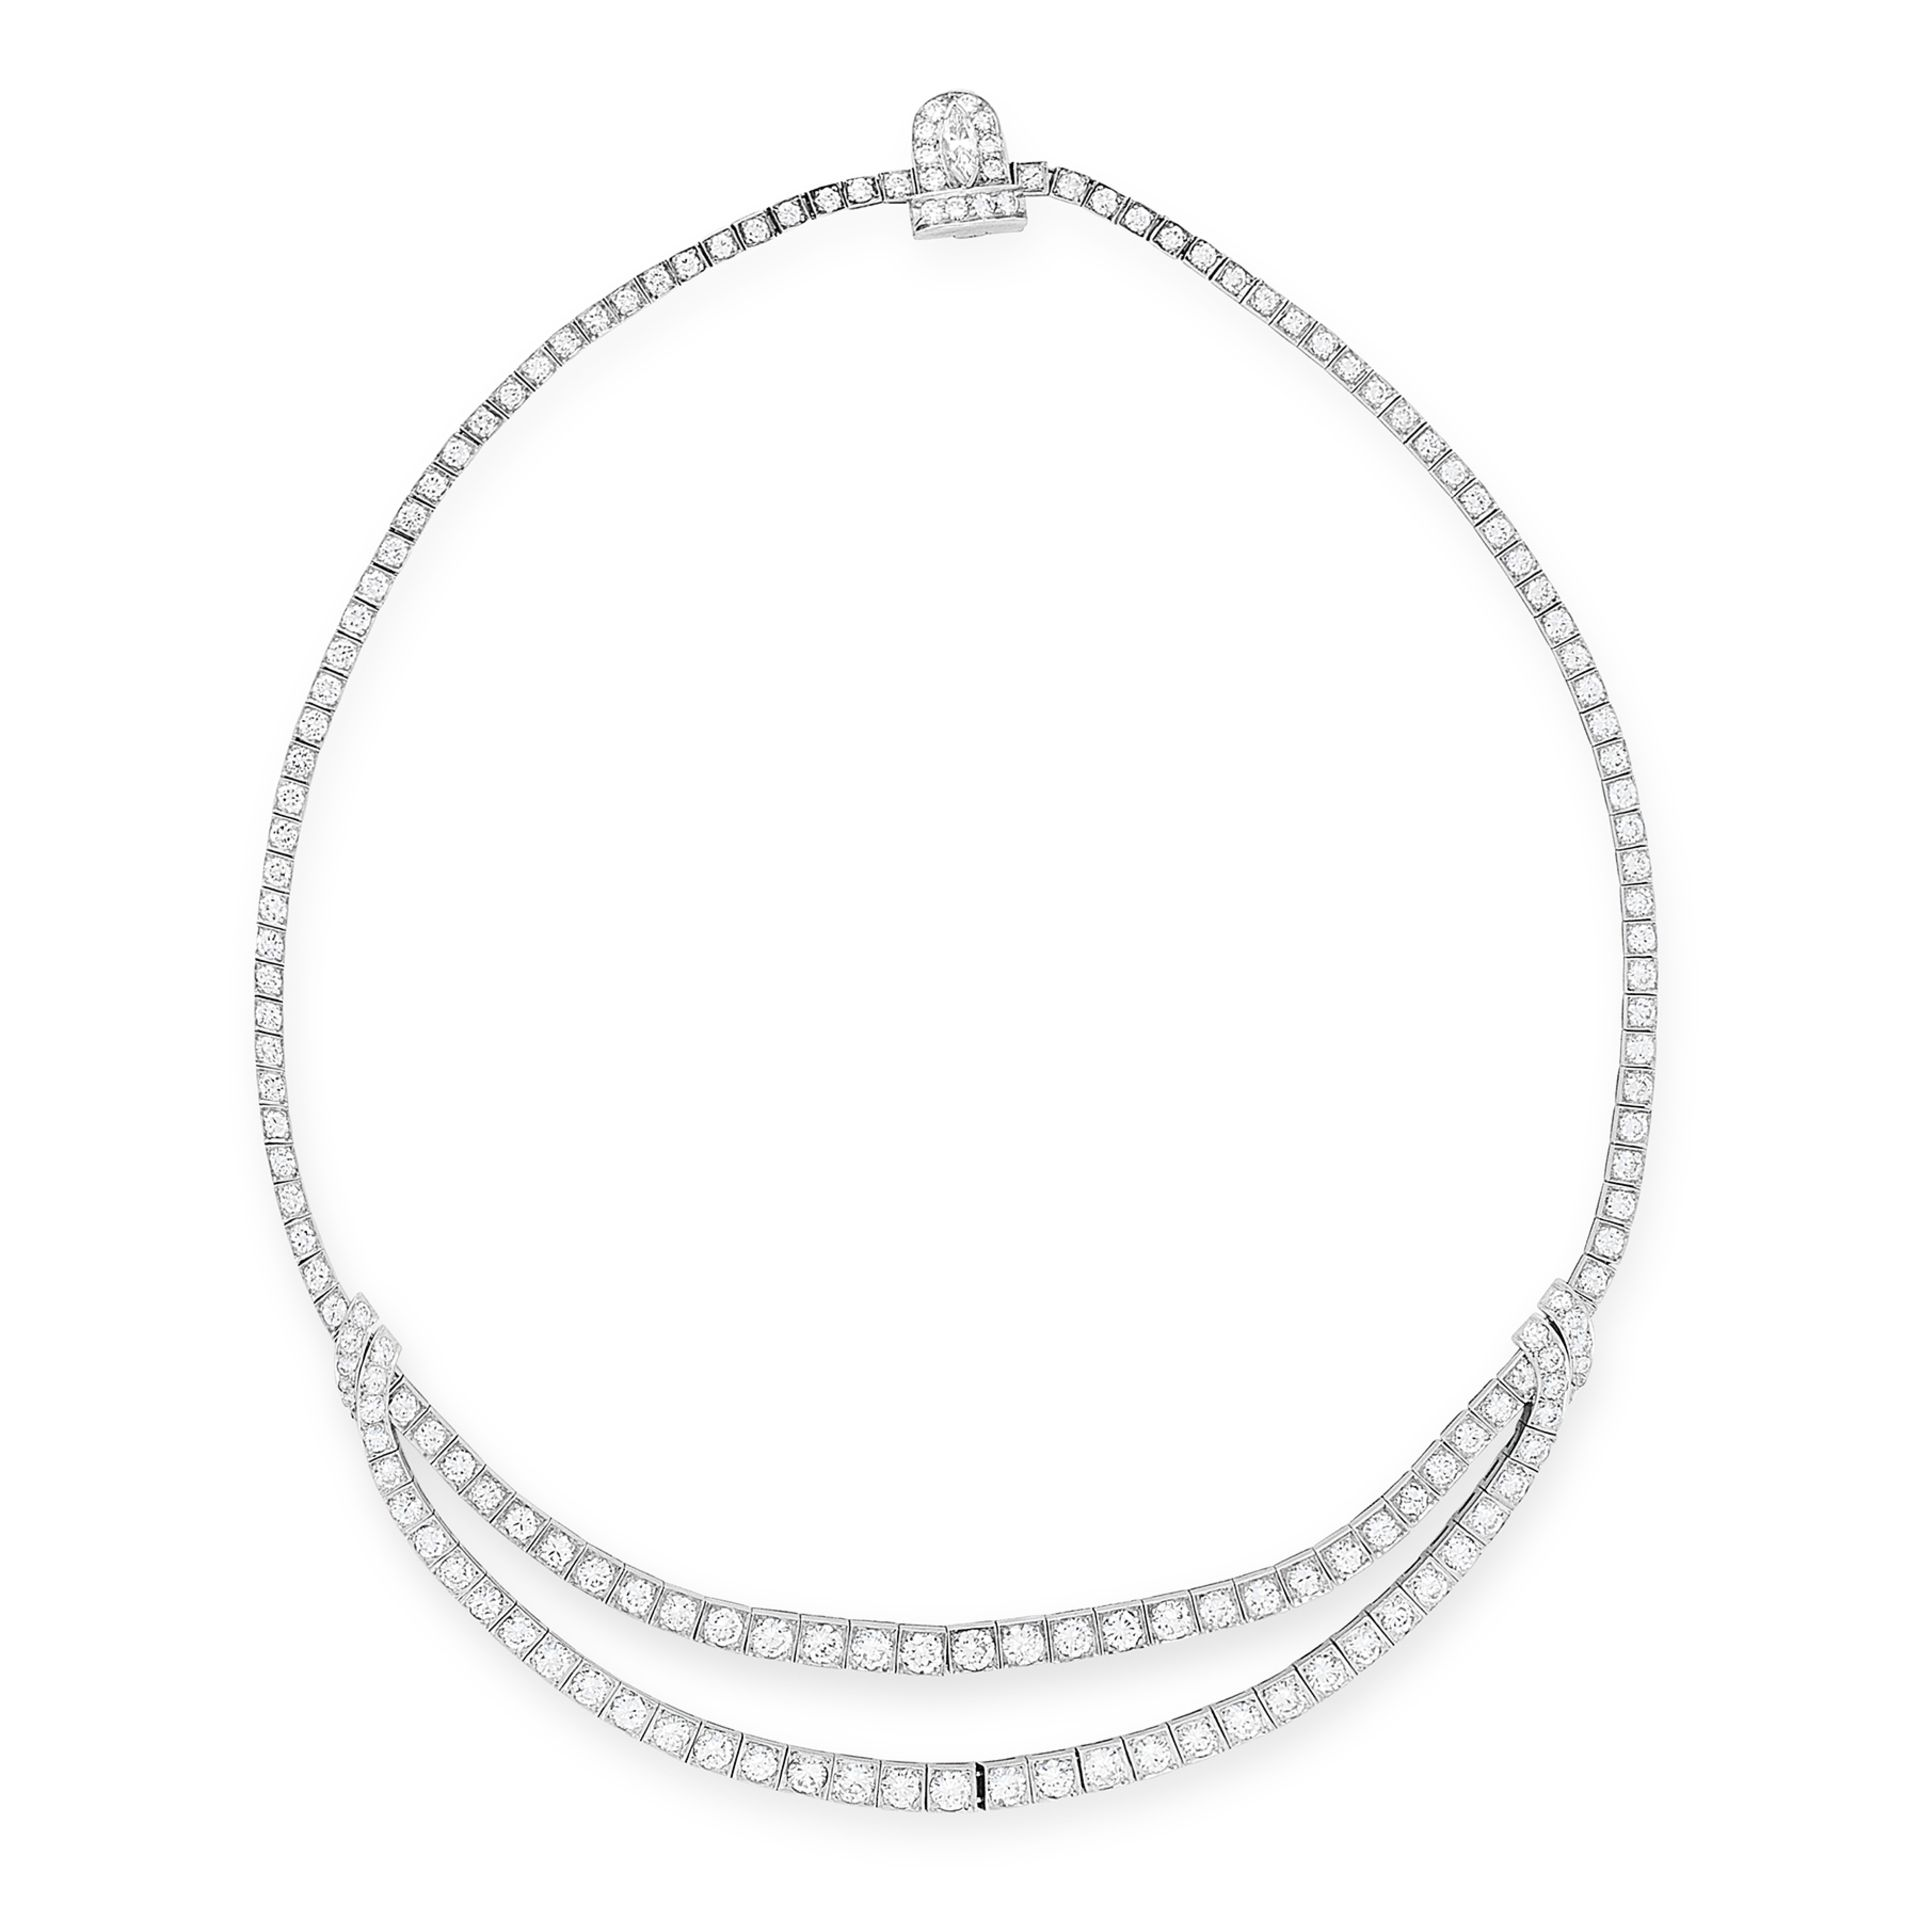 Los 40 - A VINTAGE DIAMOND NECKLACE, VAN CLEEF & ARPELS in platinum, comprising a row of graduated round